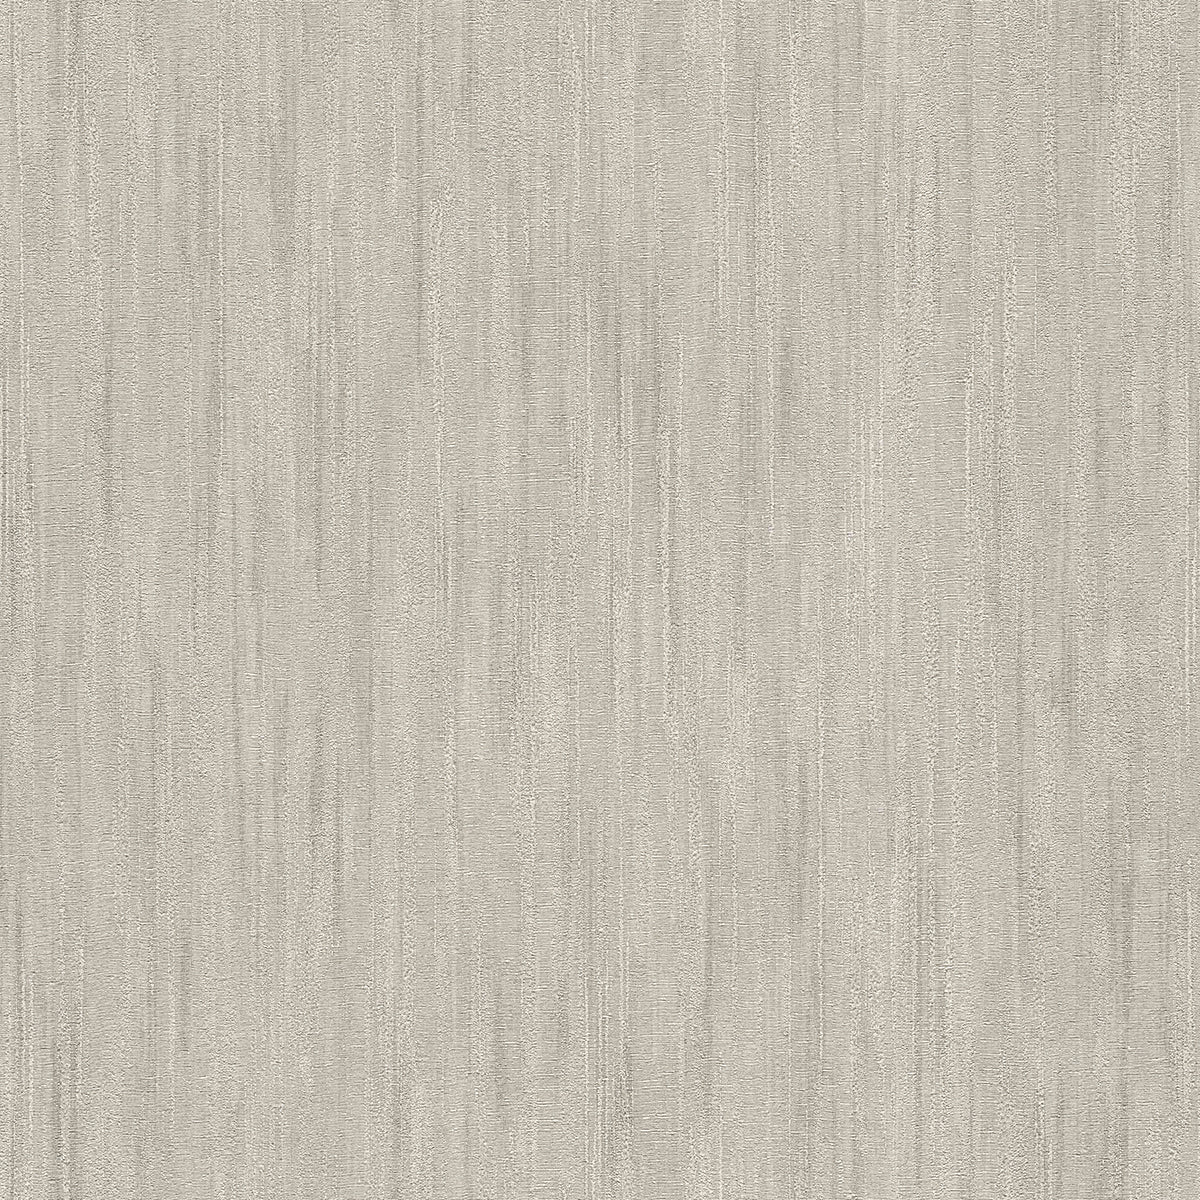 Tronchetto Pewter Vertical Texture Wallpaper